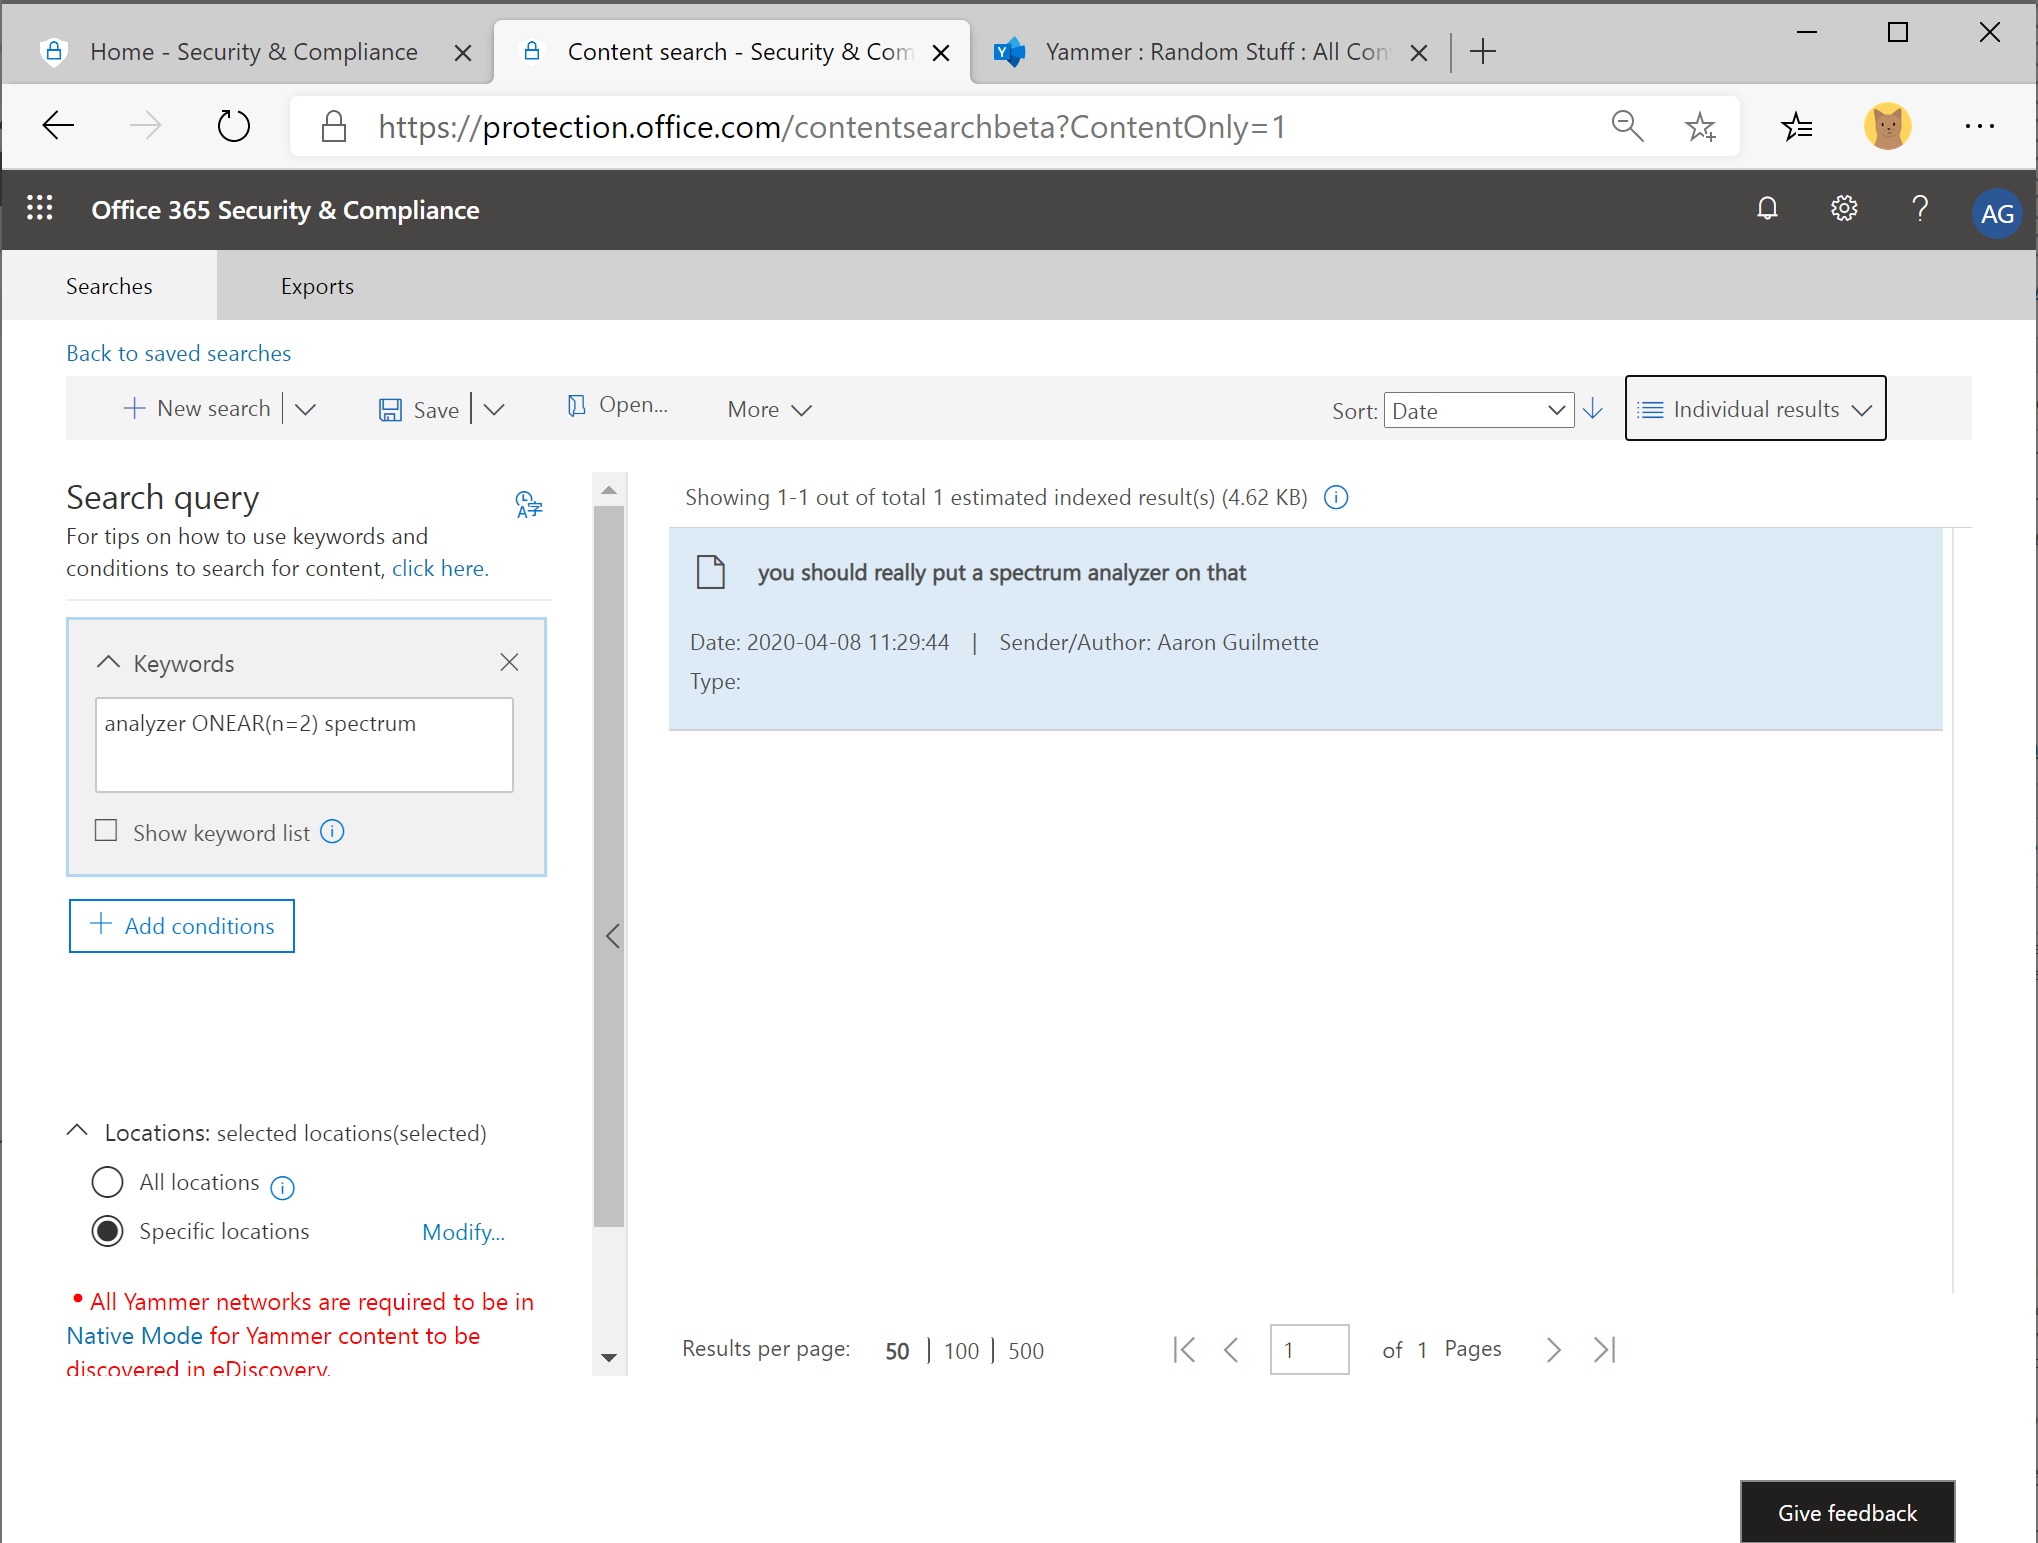 Office 365 Security & Compliance Center eDiscovery - Part 4: Learning NEAR and ONEAR